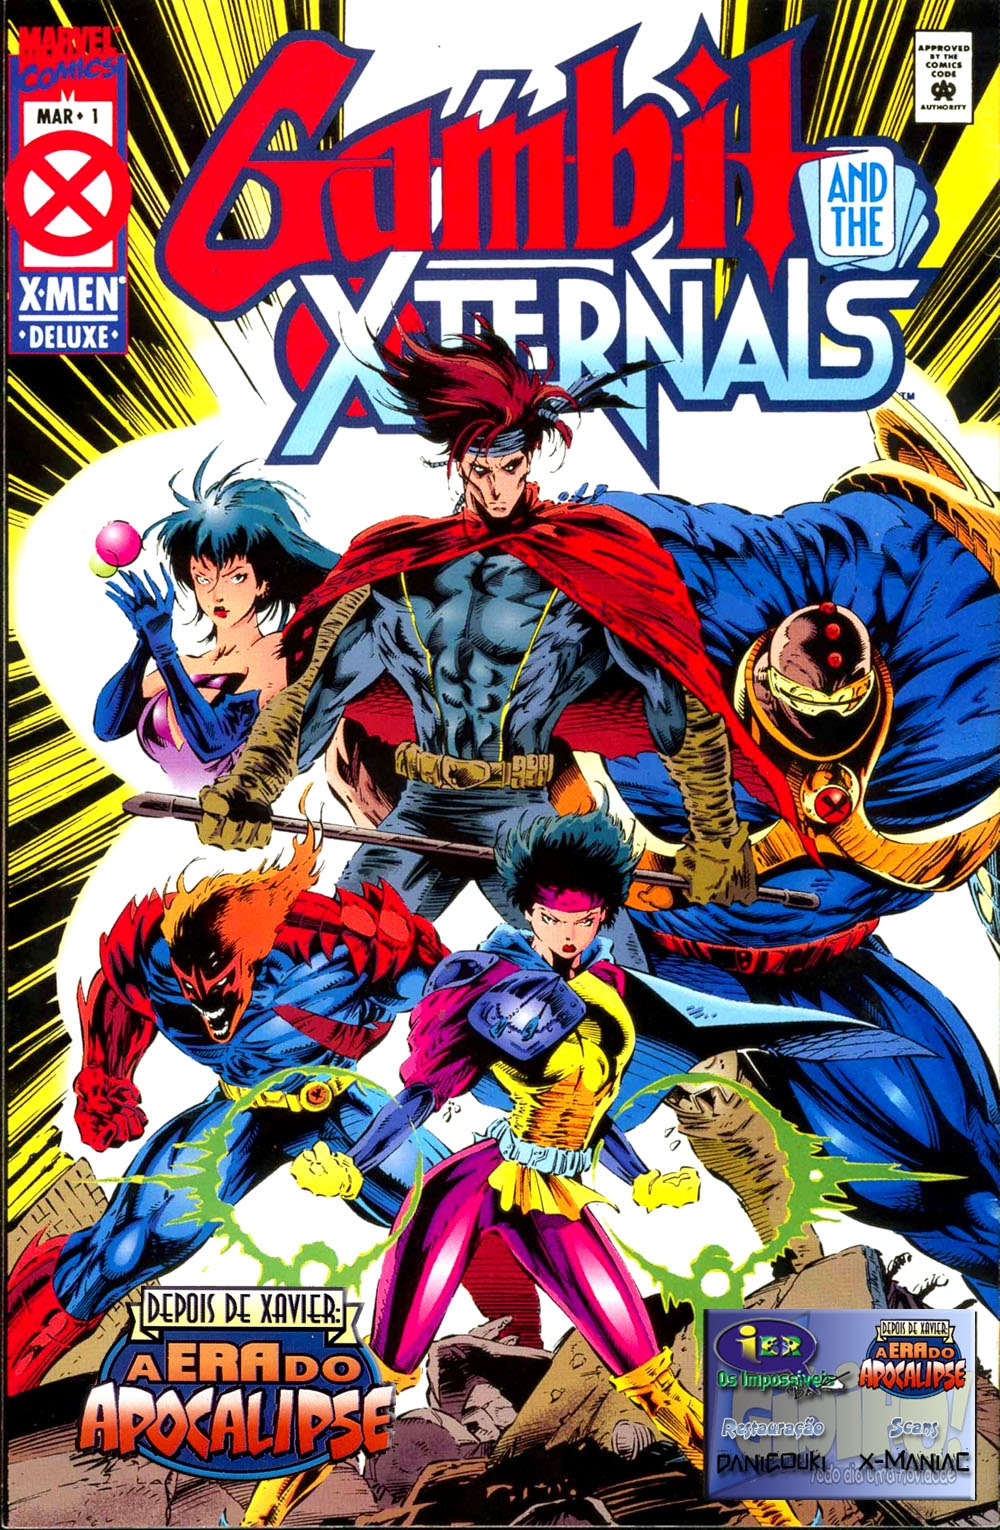 X-Men - A Era do Apocalipse #15